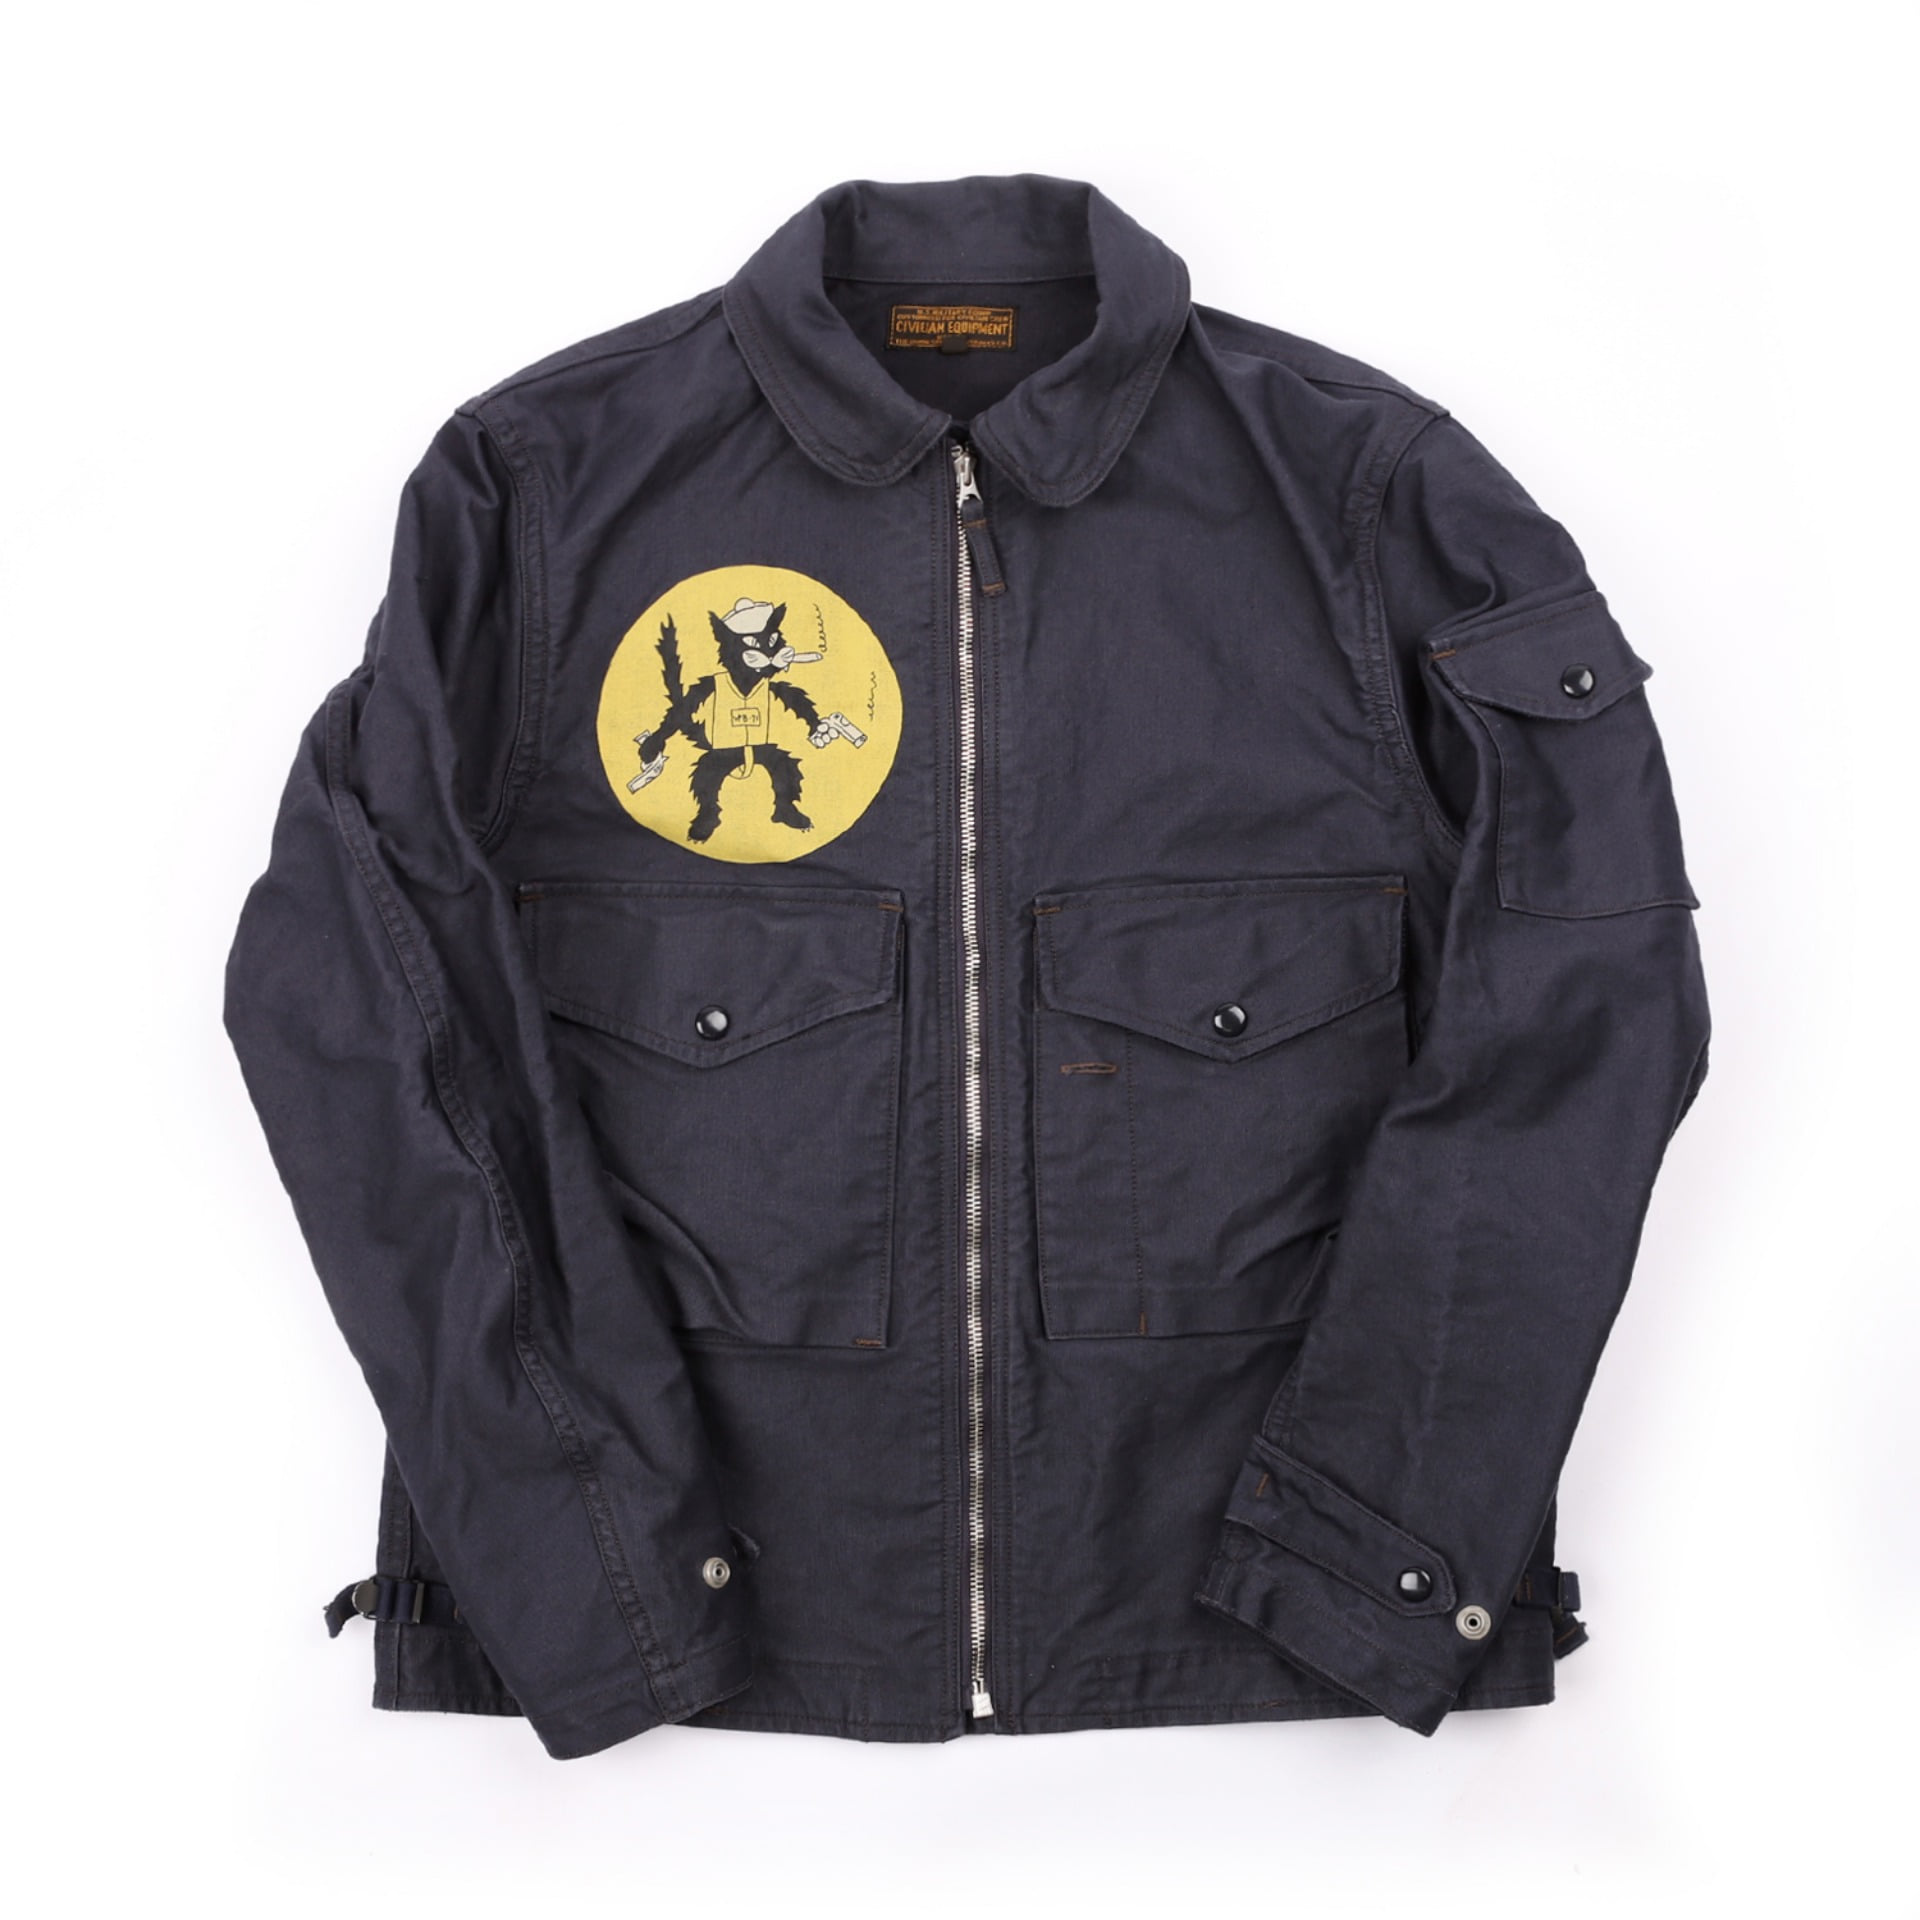 "[UNION SPECIAL OVERALLS]S-8 AVIATOR JACKET""VPB-71 BLACK CATS""(Dark Navy)"